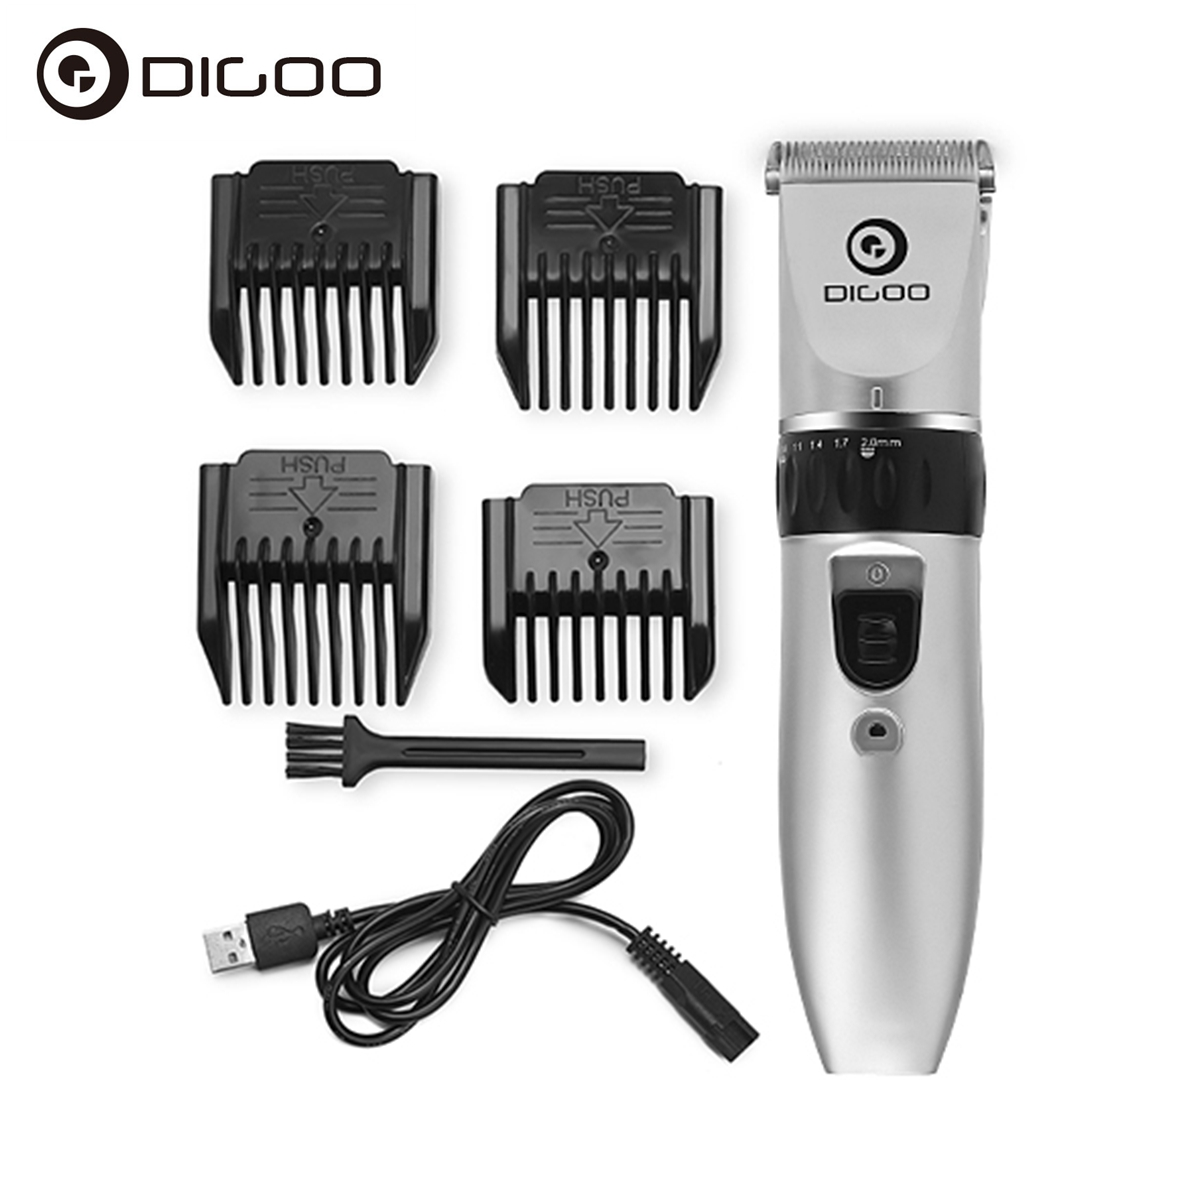 Digoo BB T1 USB Ceramic R Blade Hair Trimmer Rechargeable Hair Clipper 4X Extra Limiting Comb Silent Motor for Children Baby Men|Personal Care Appliance Accessories| |  - title=